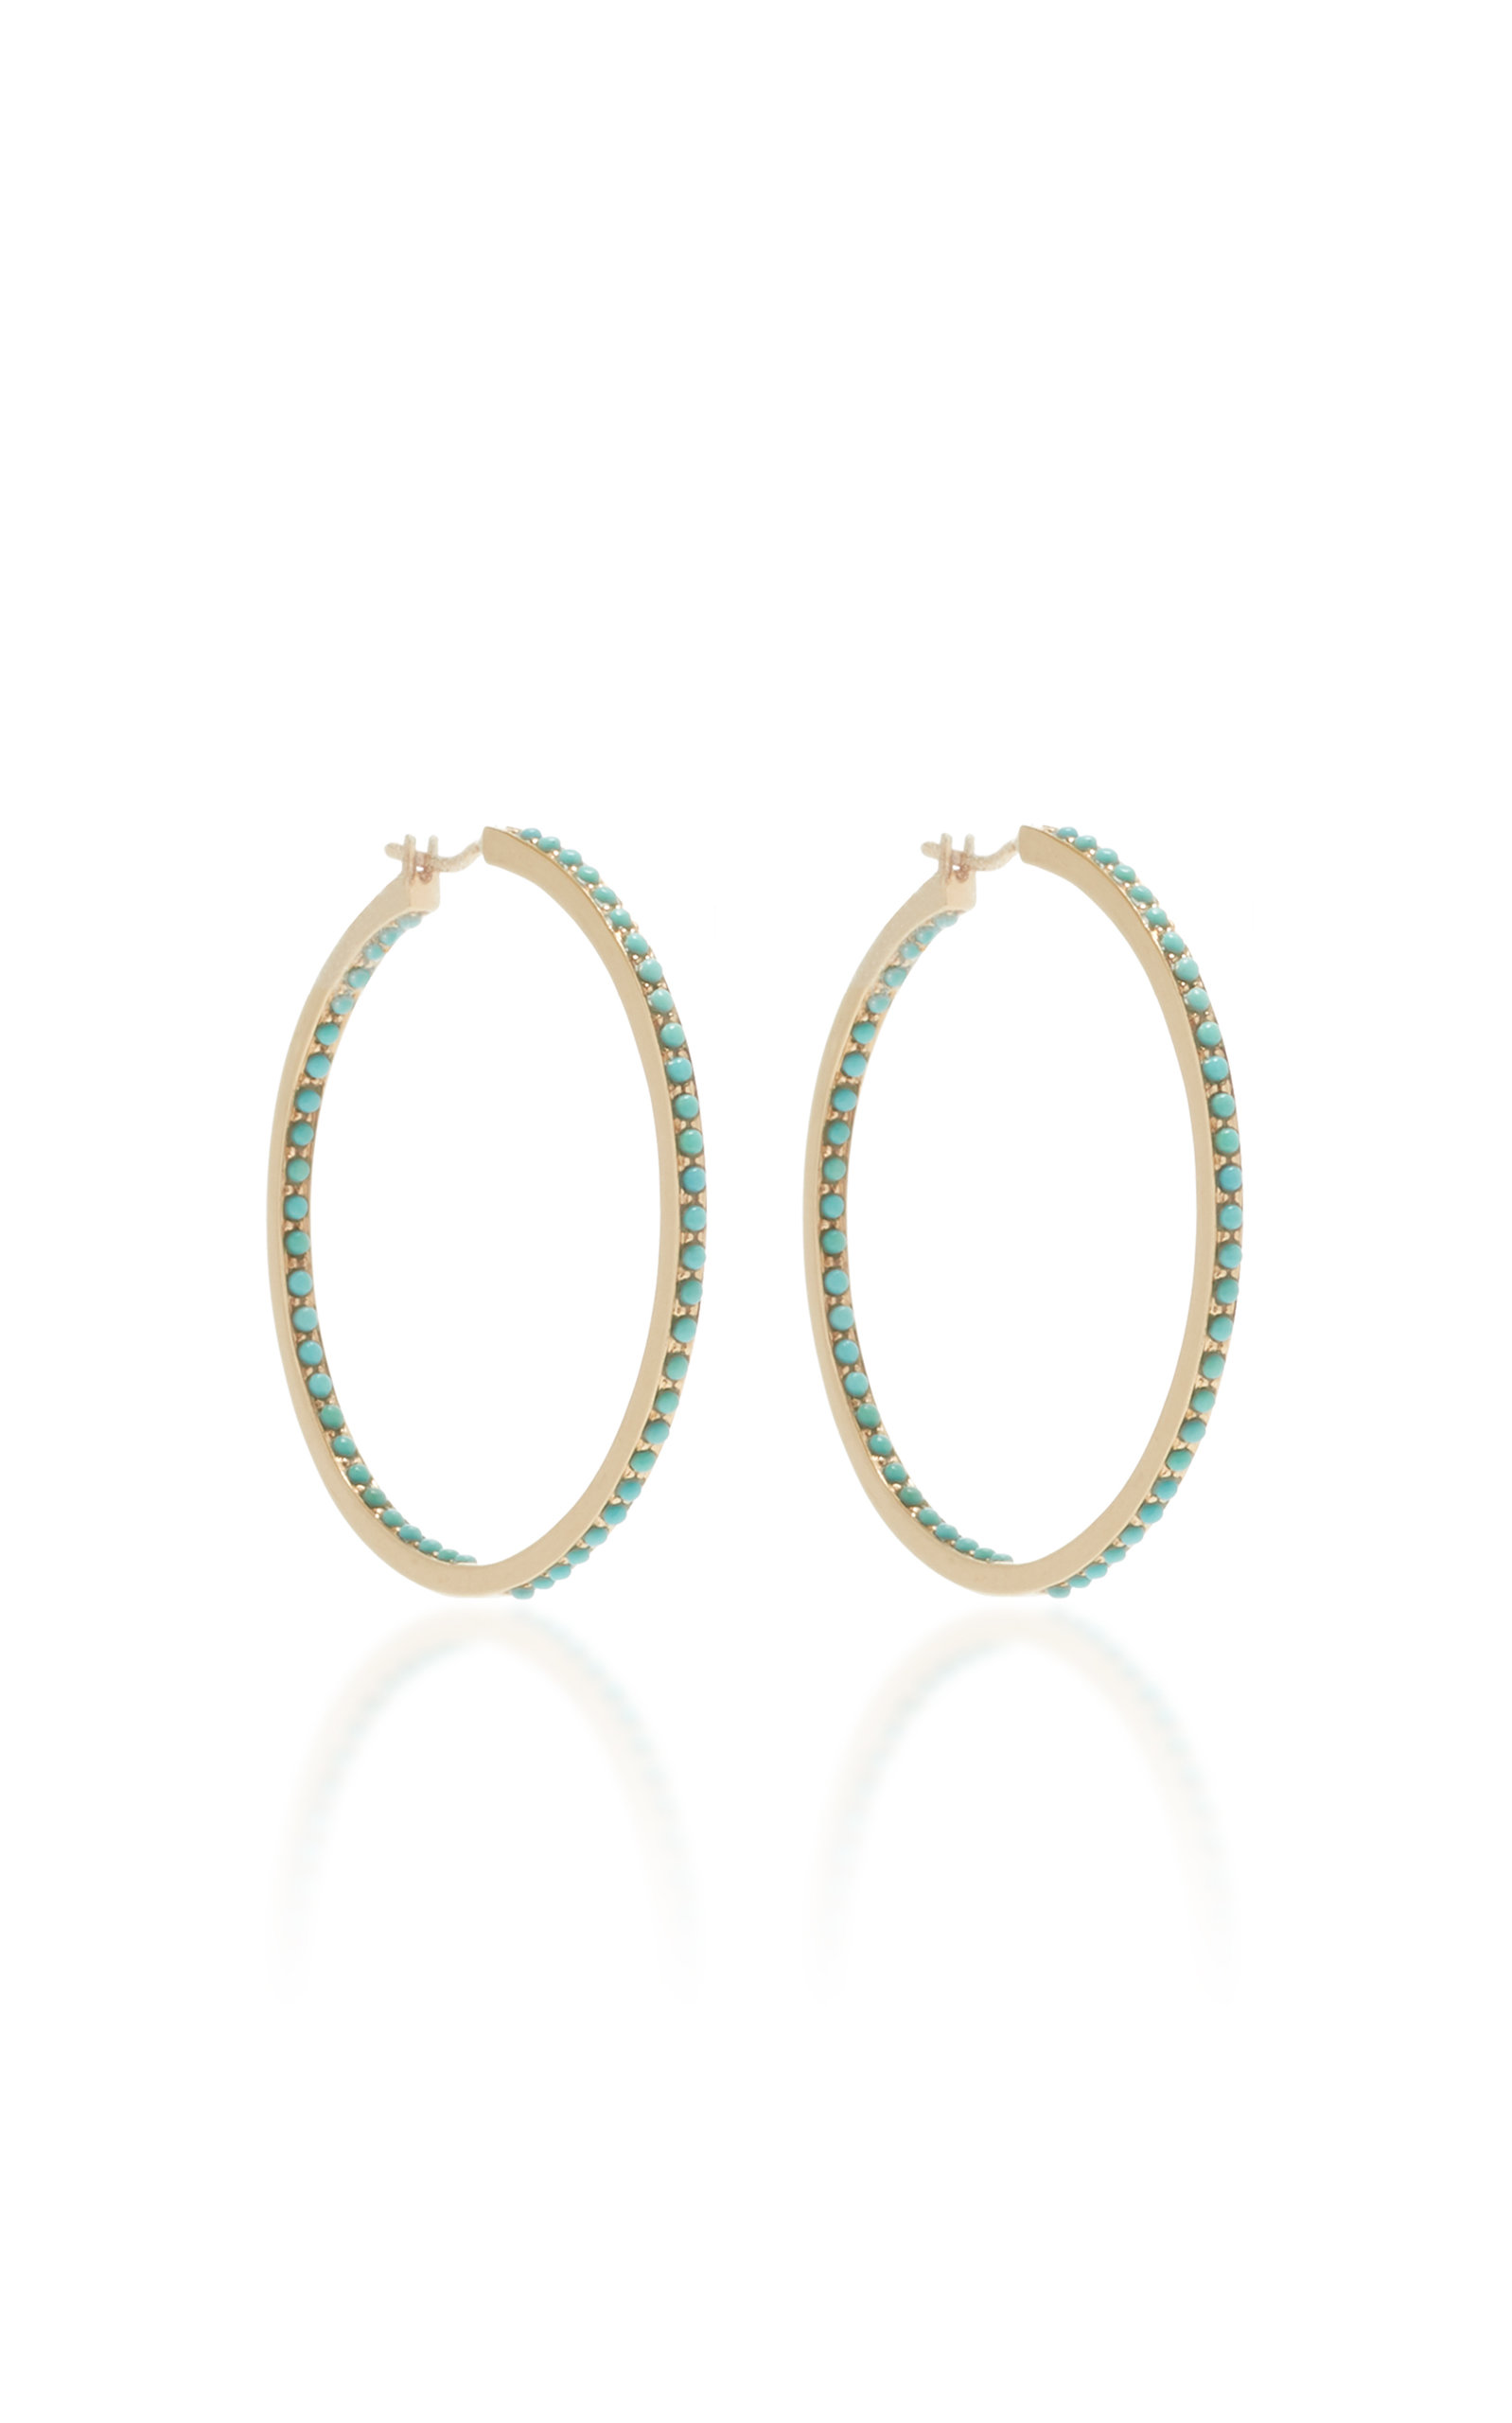 LARGE PAVE TURQUOISE HOOPS